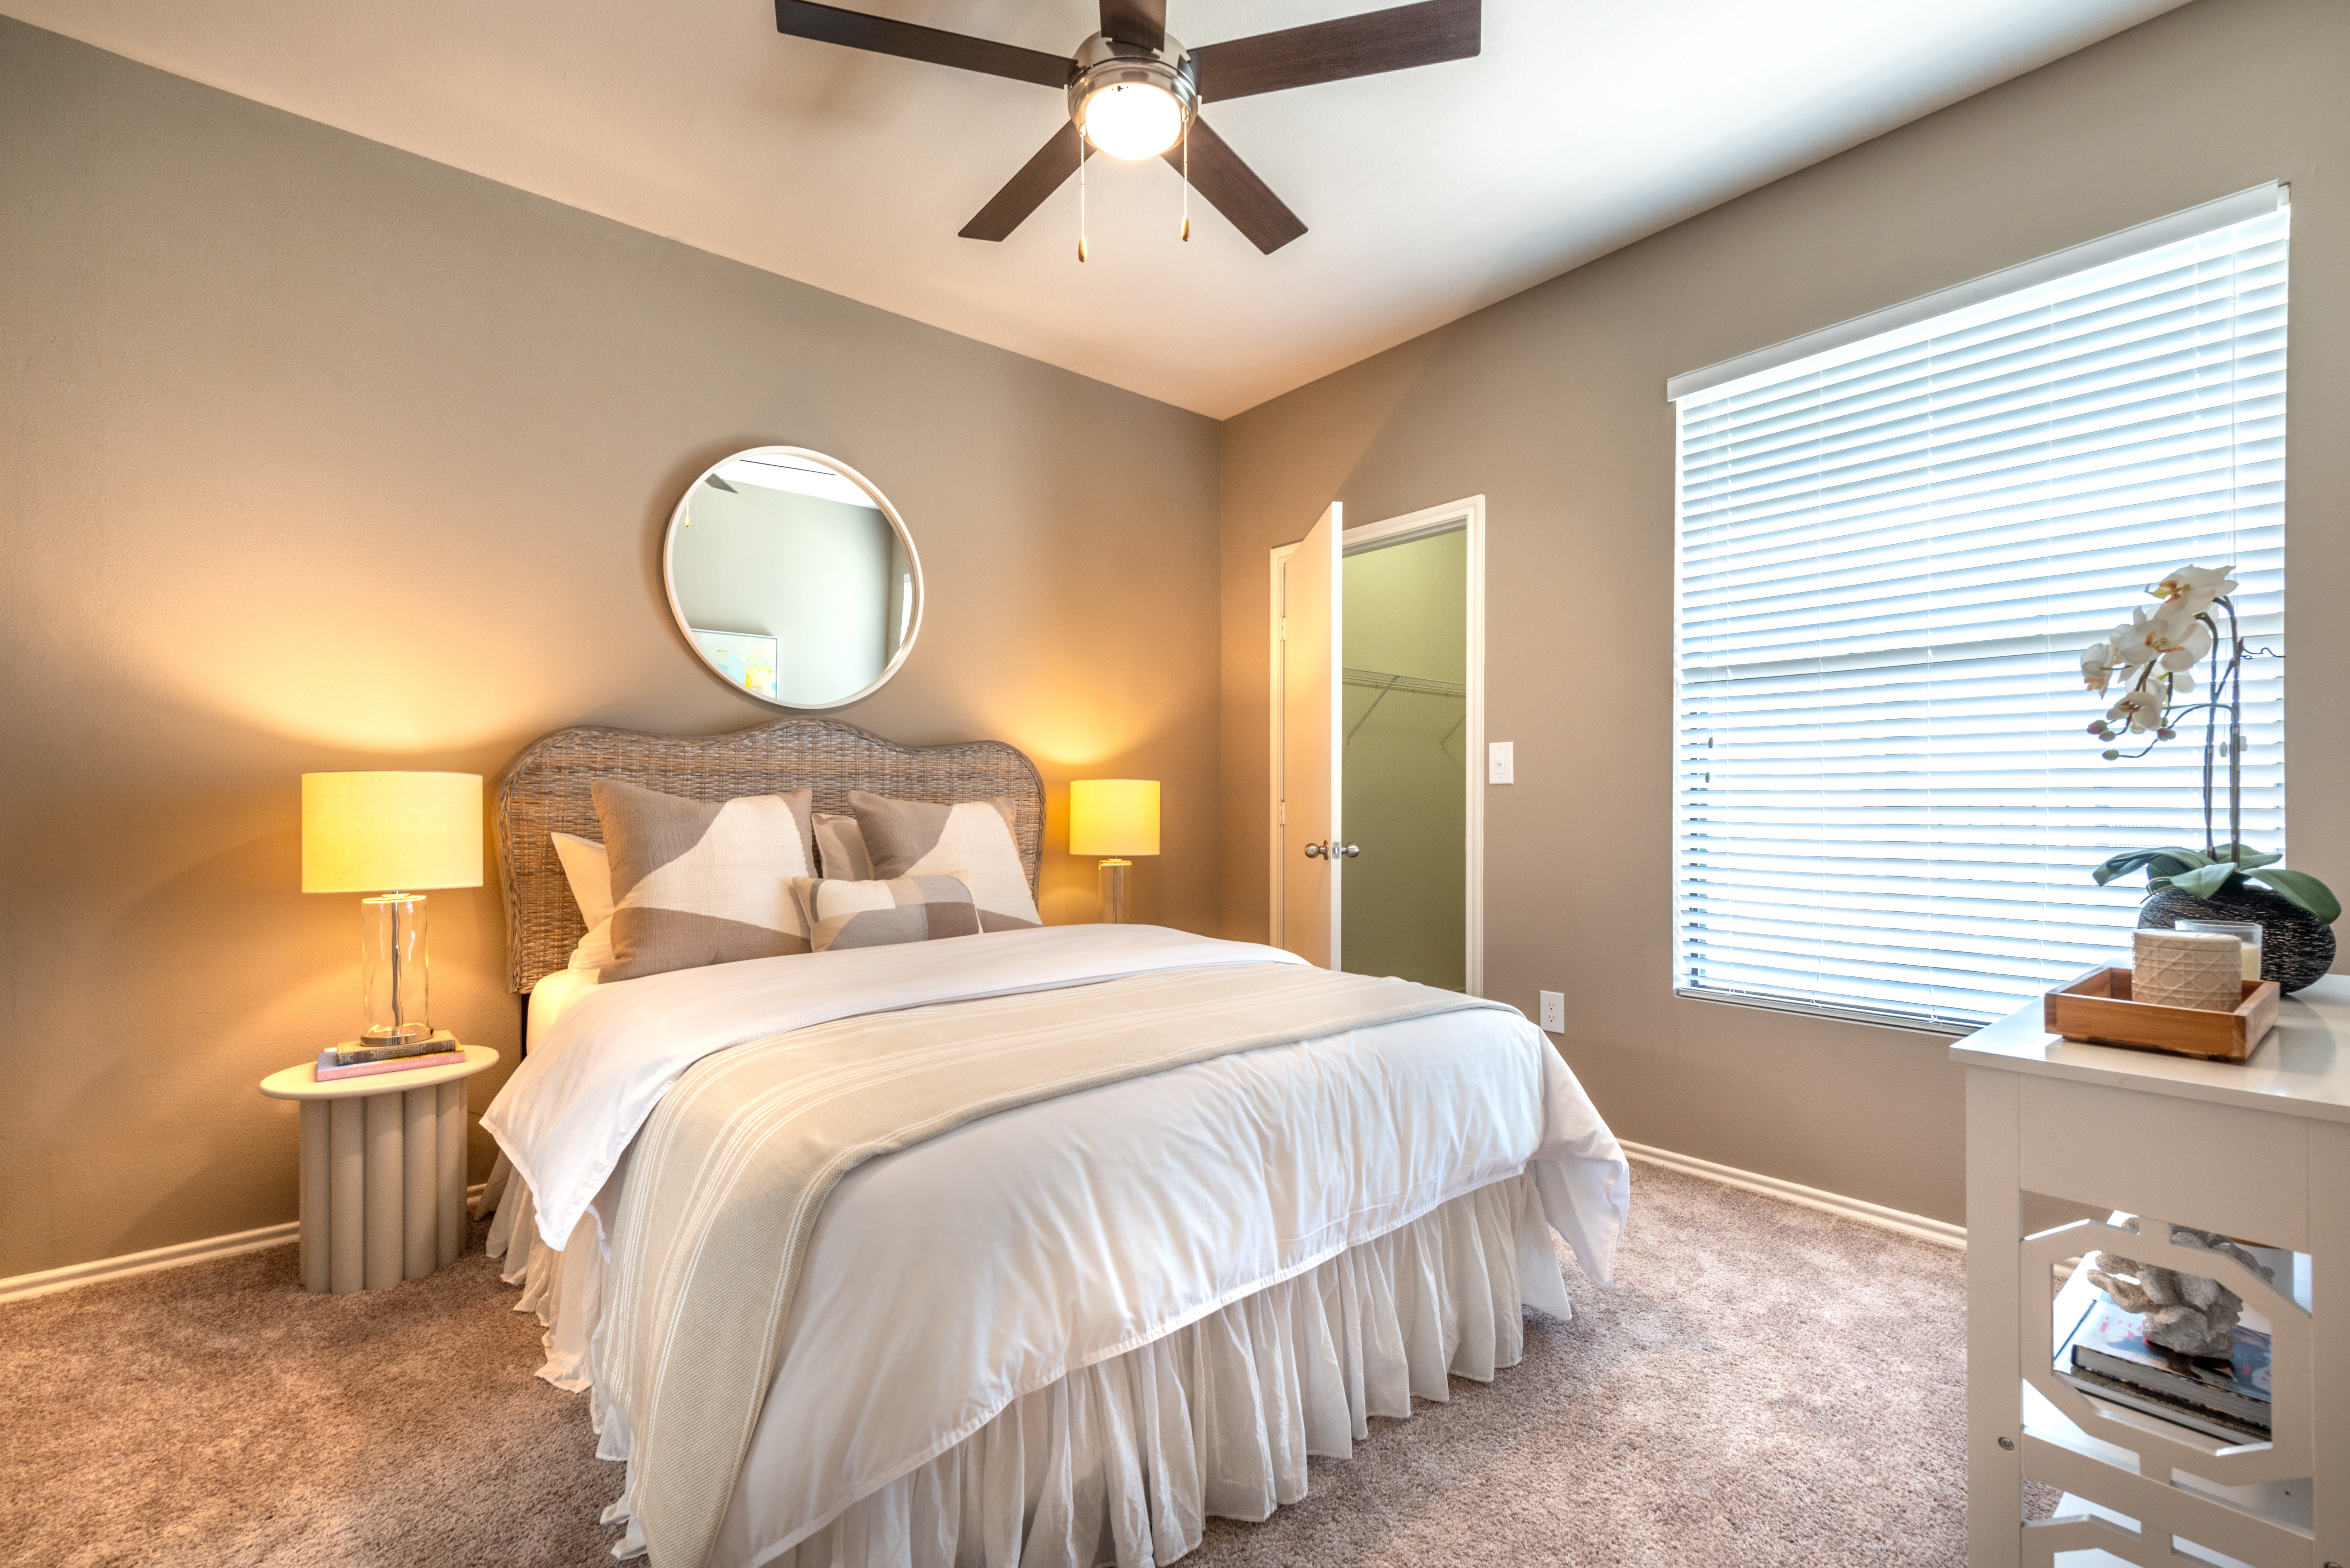 Well-furnished model home's bedroom at Olympus Team Ranch in Benbrook, Texas